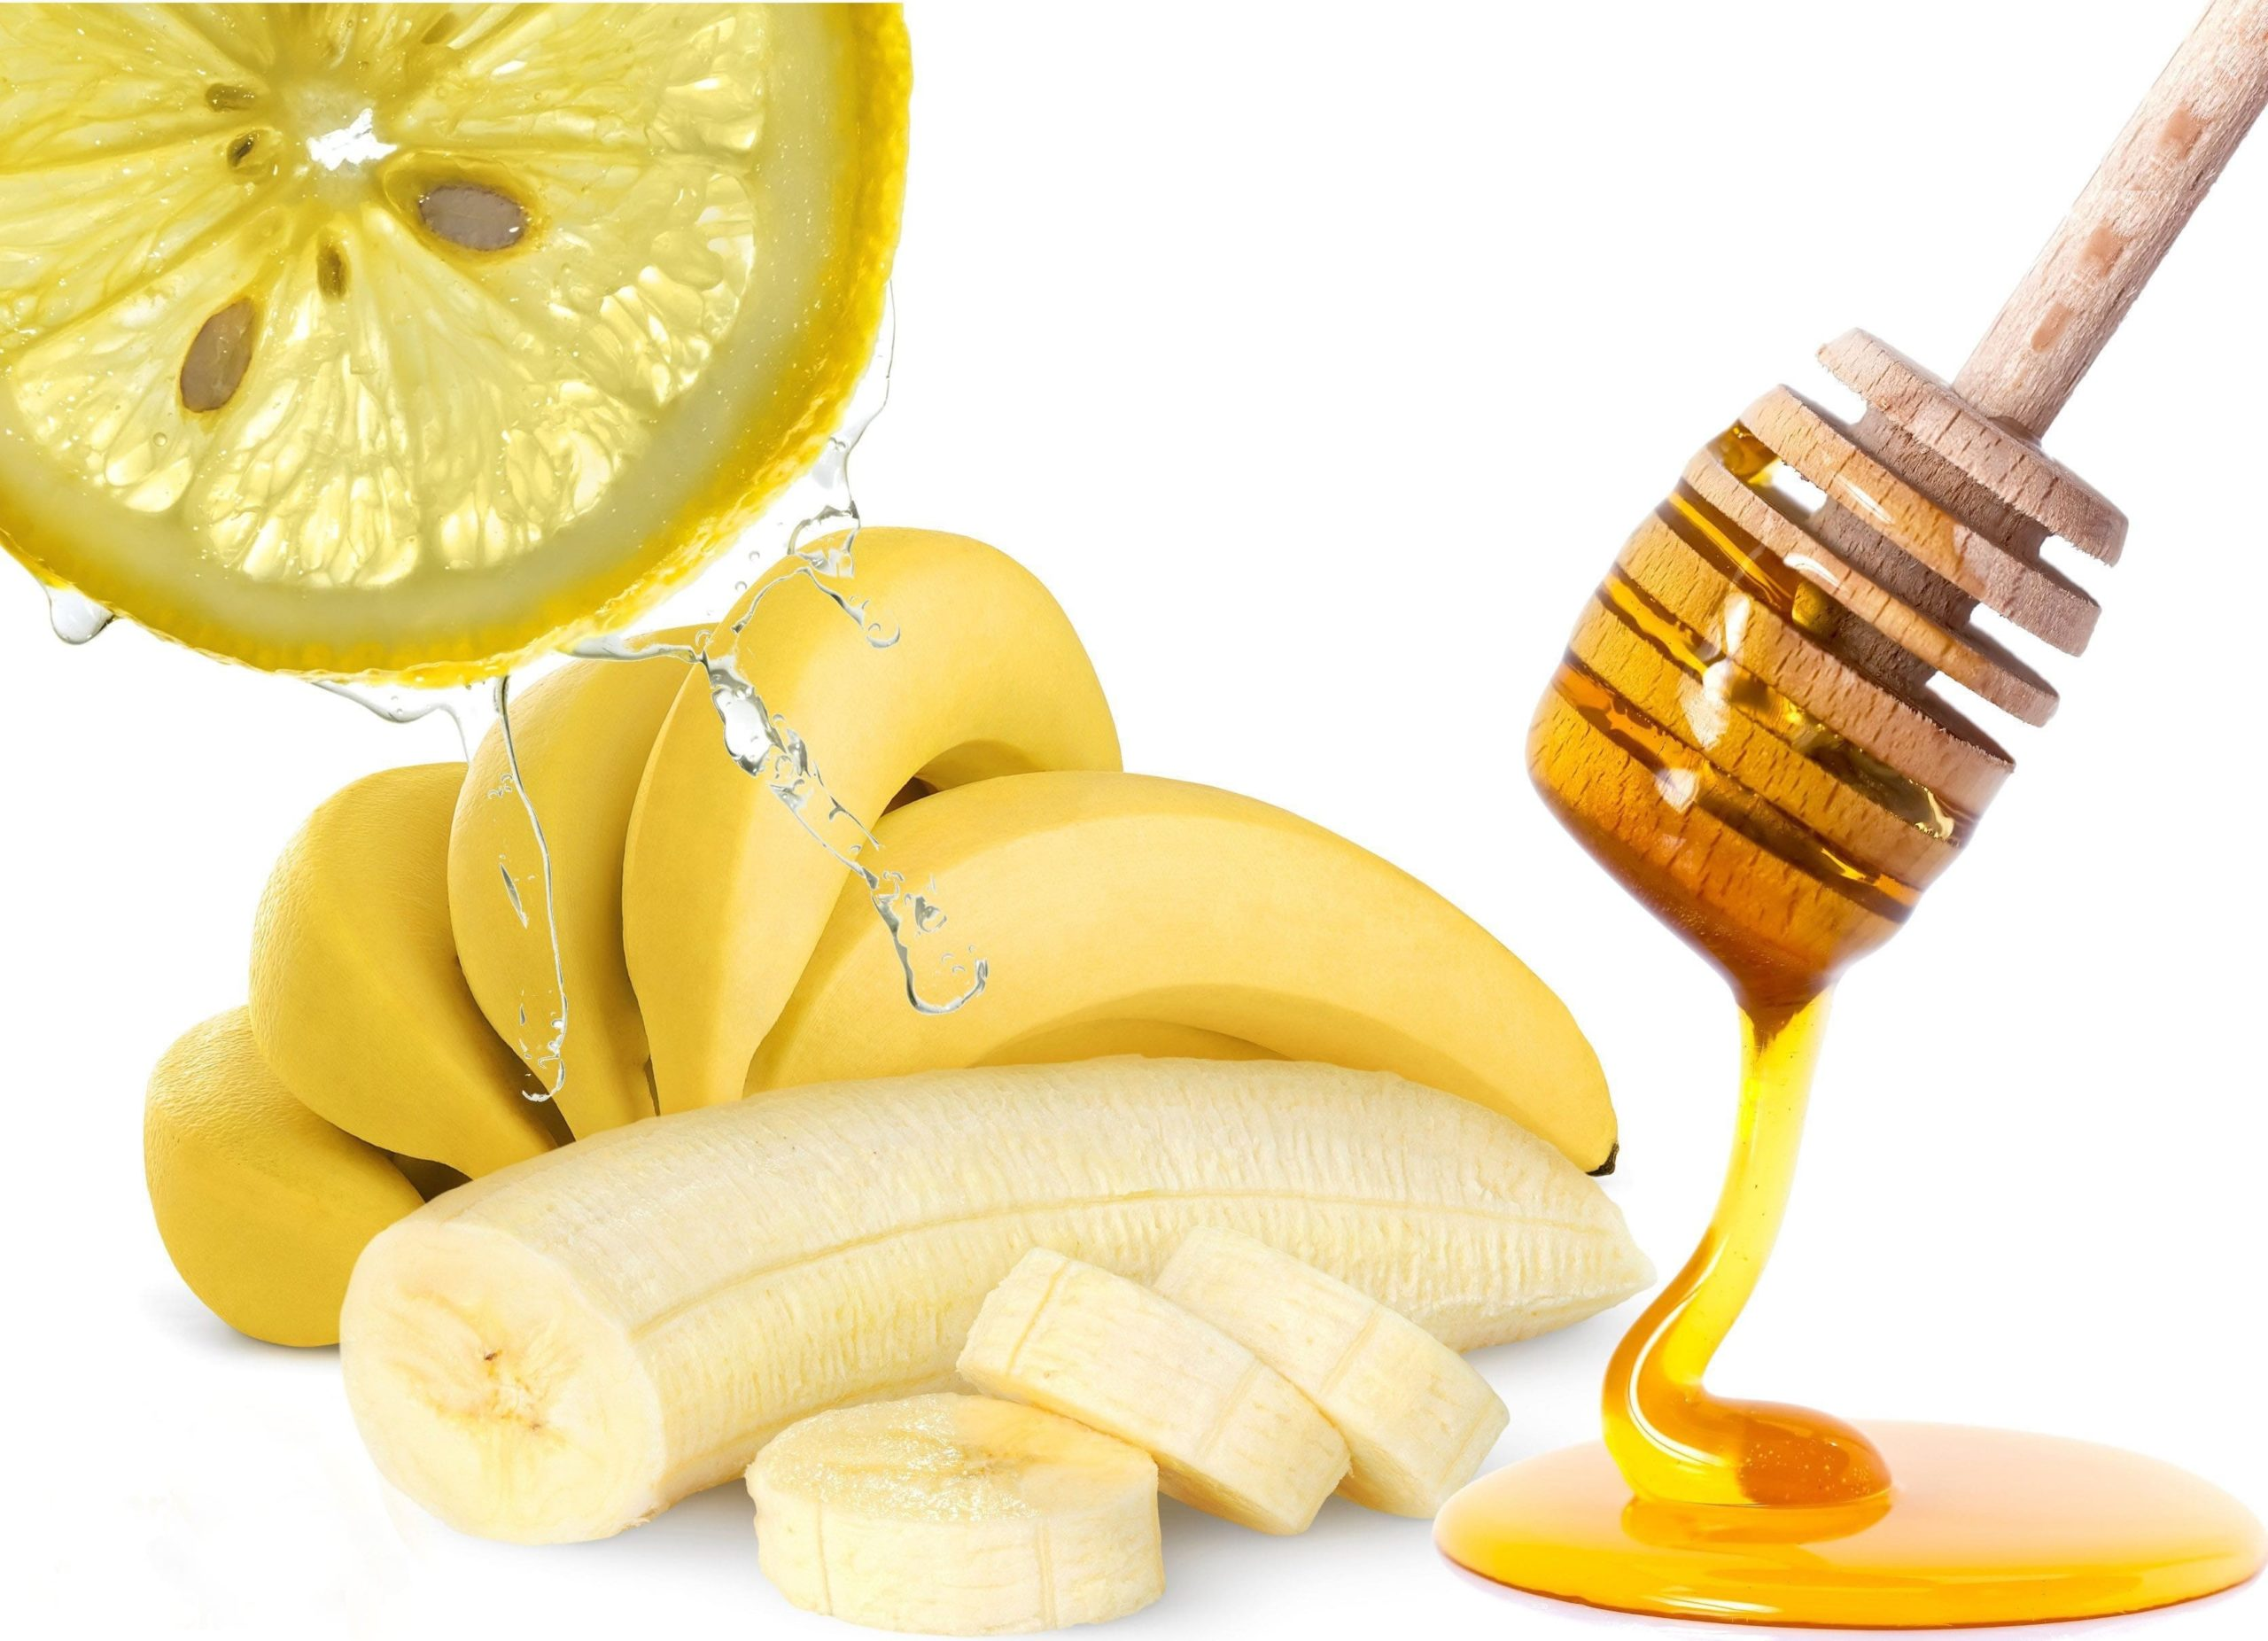 a banana sliced next to a spoonful of honey and a slice of lemon.